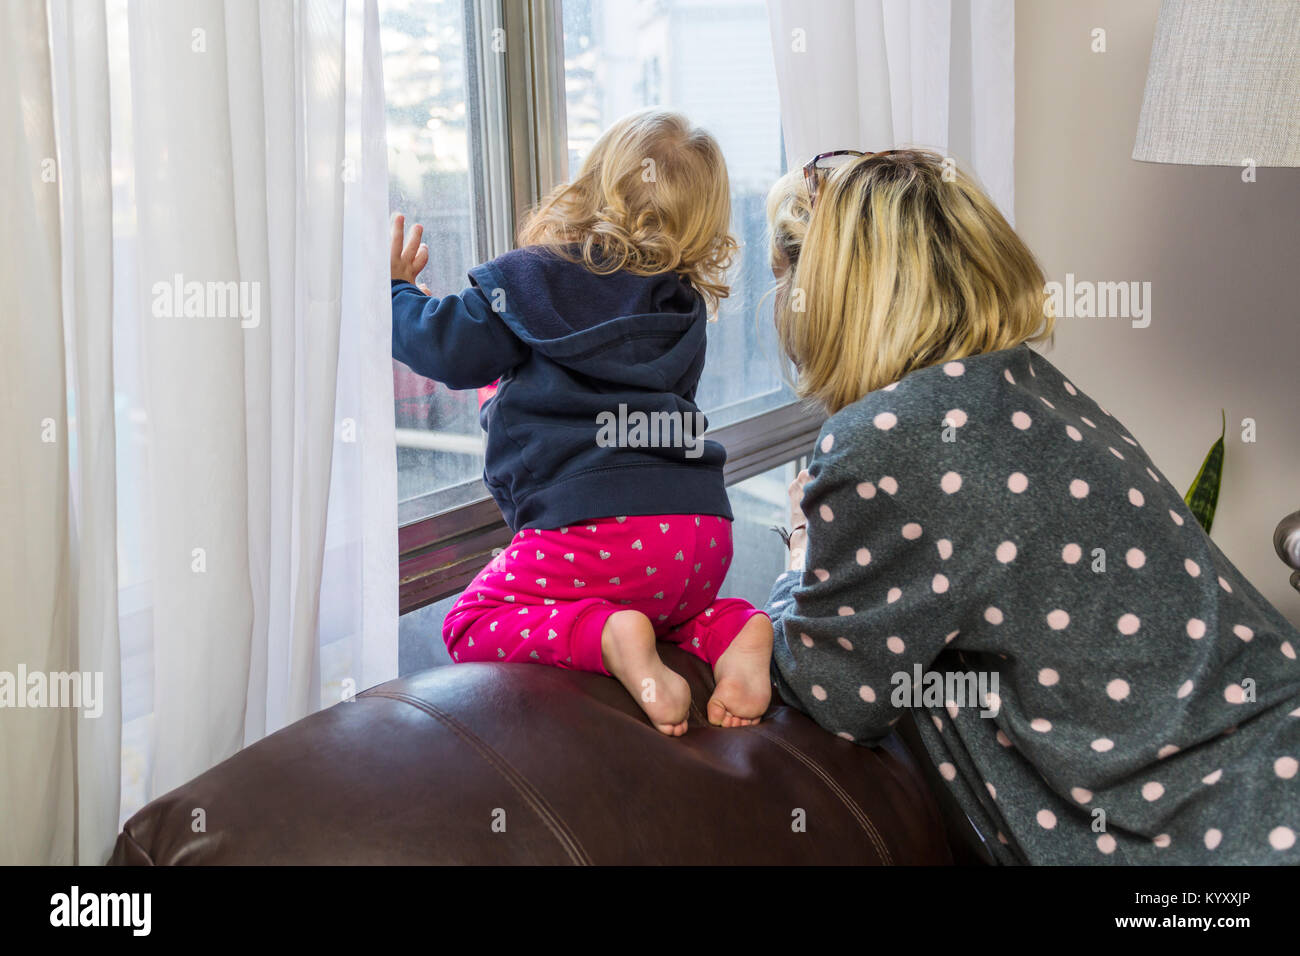 mother and child looking out window child is at risk of falling - Stock Image